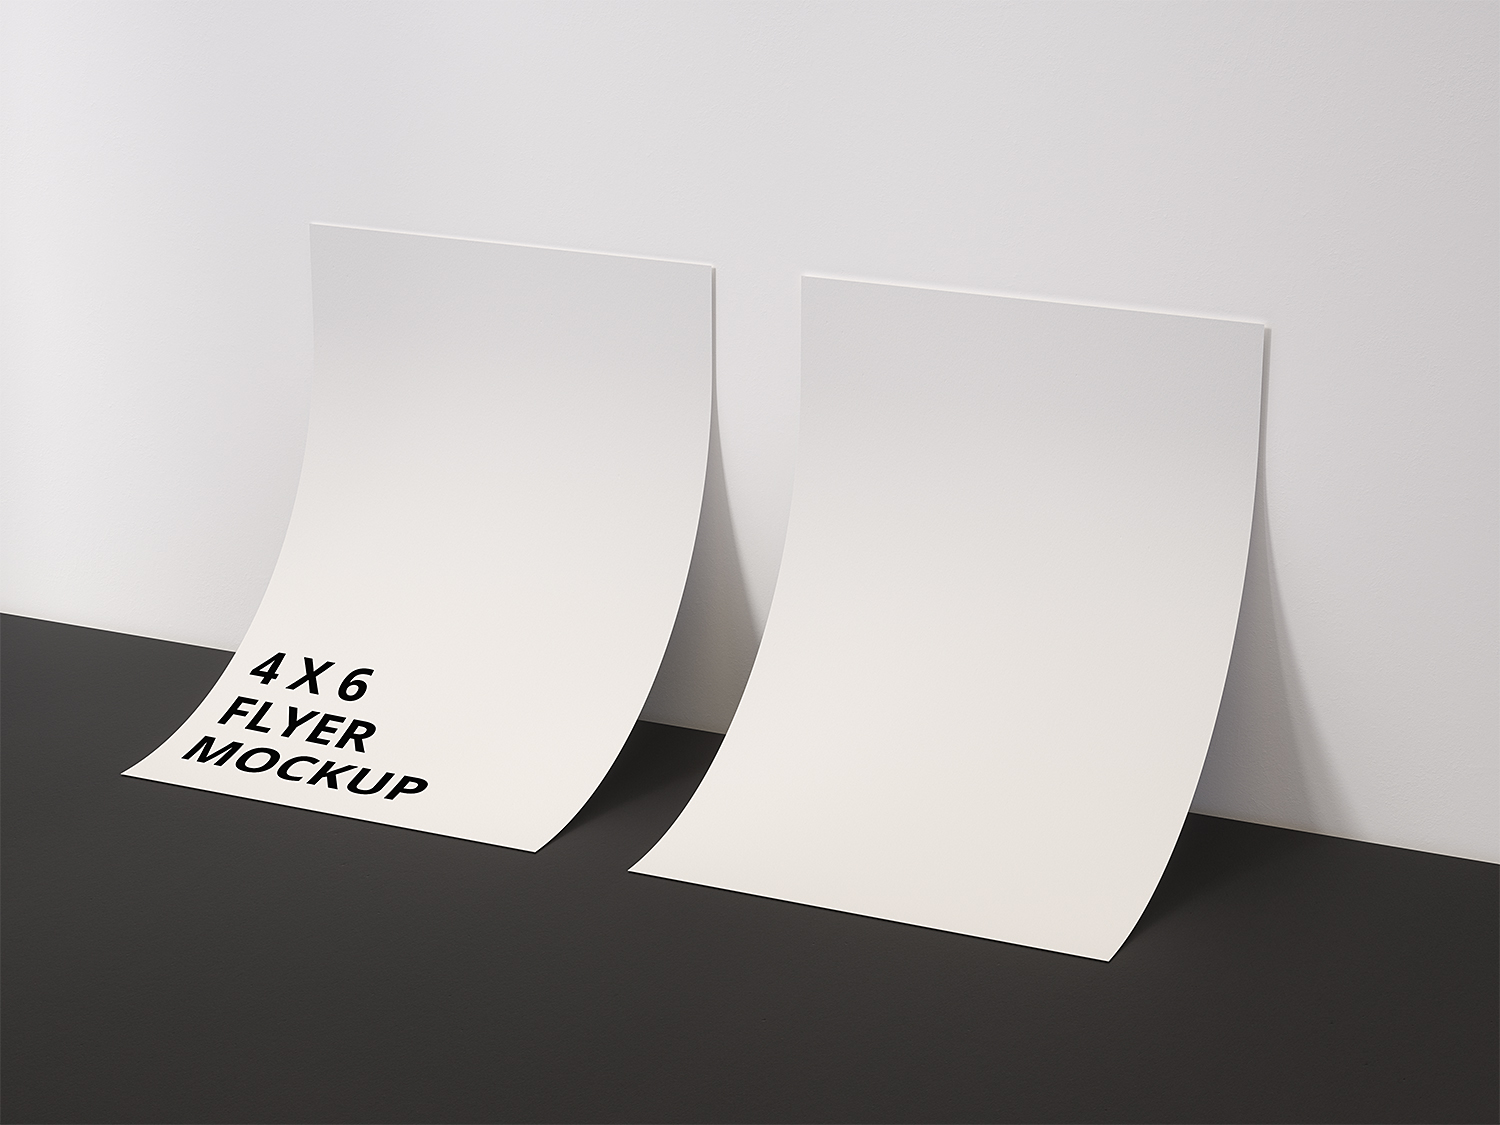 Double-Sided 4x6 Inch Flyer Mockup